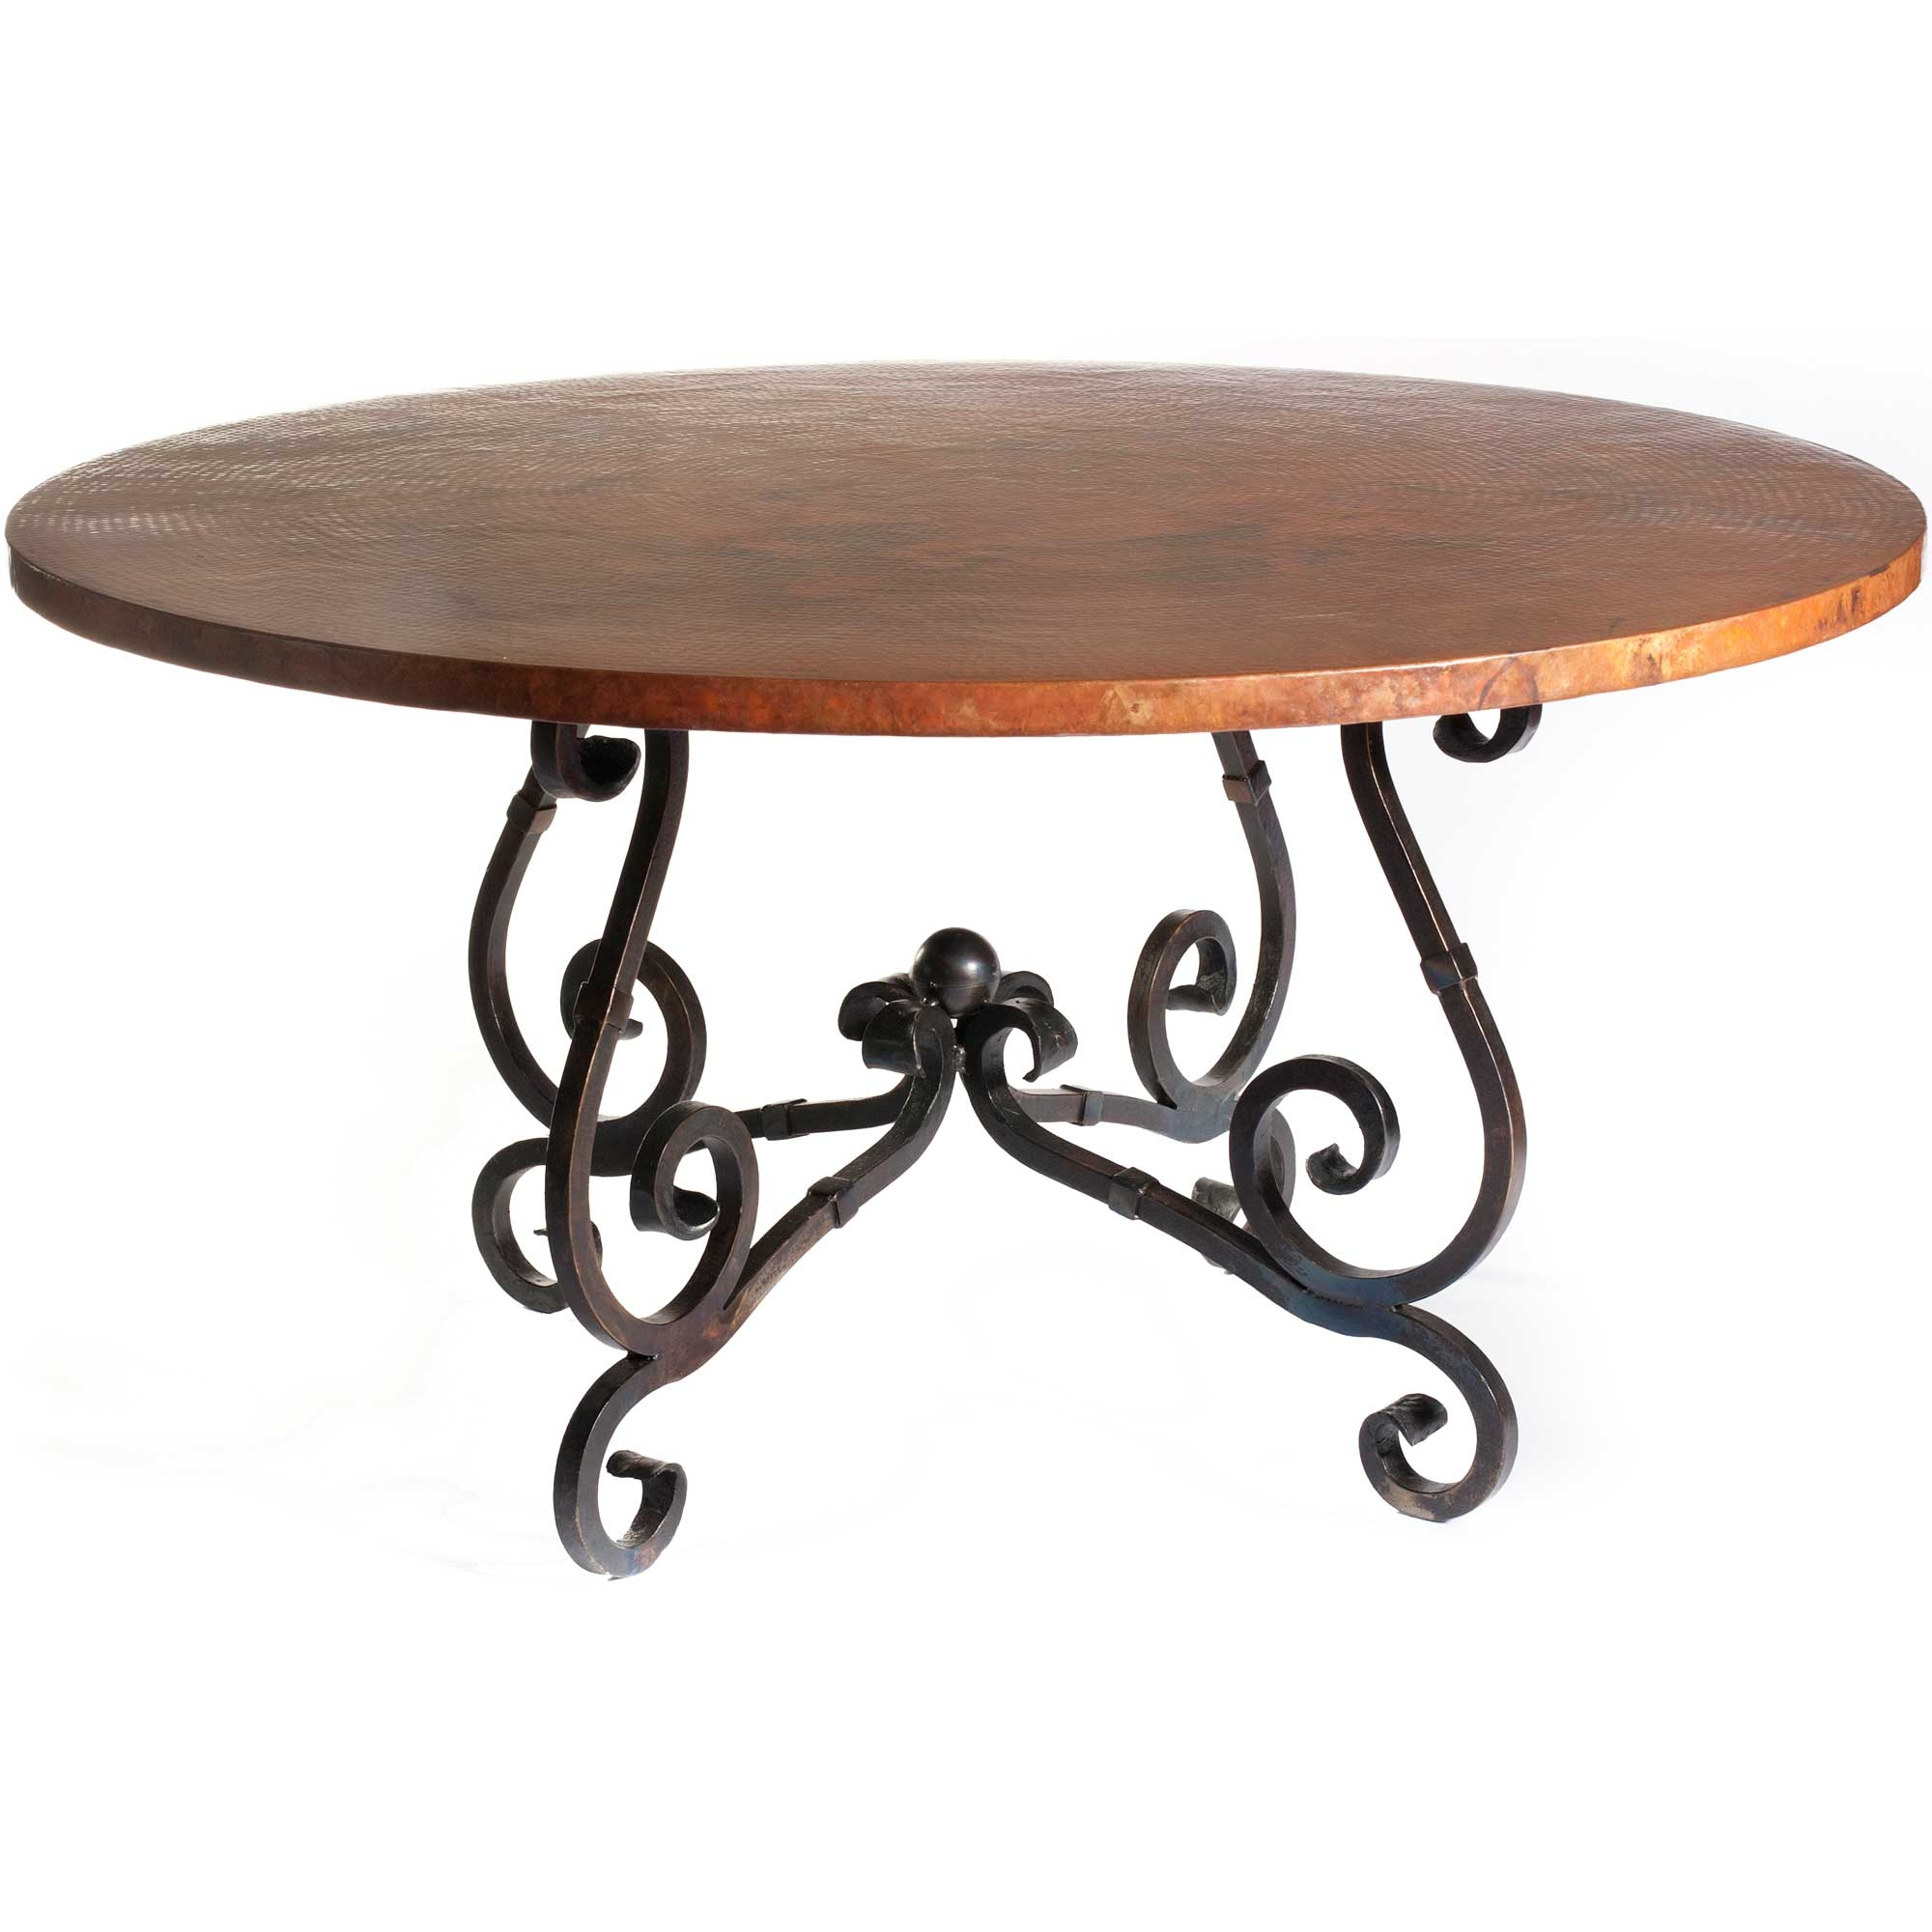 Ethan Allen Copper Top Coffee Table: French Iron Dining Table With 54-in. Round Hammered Copper Top